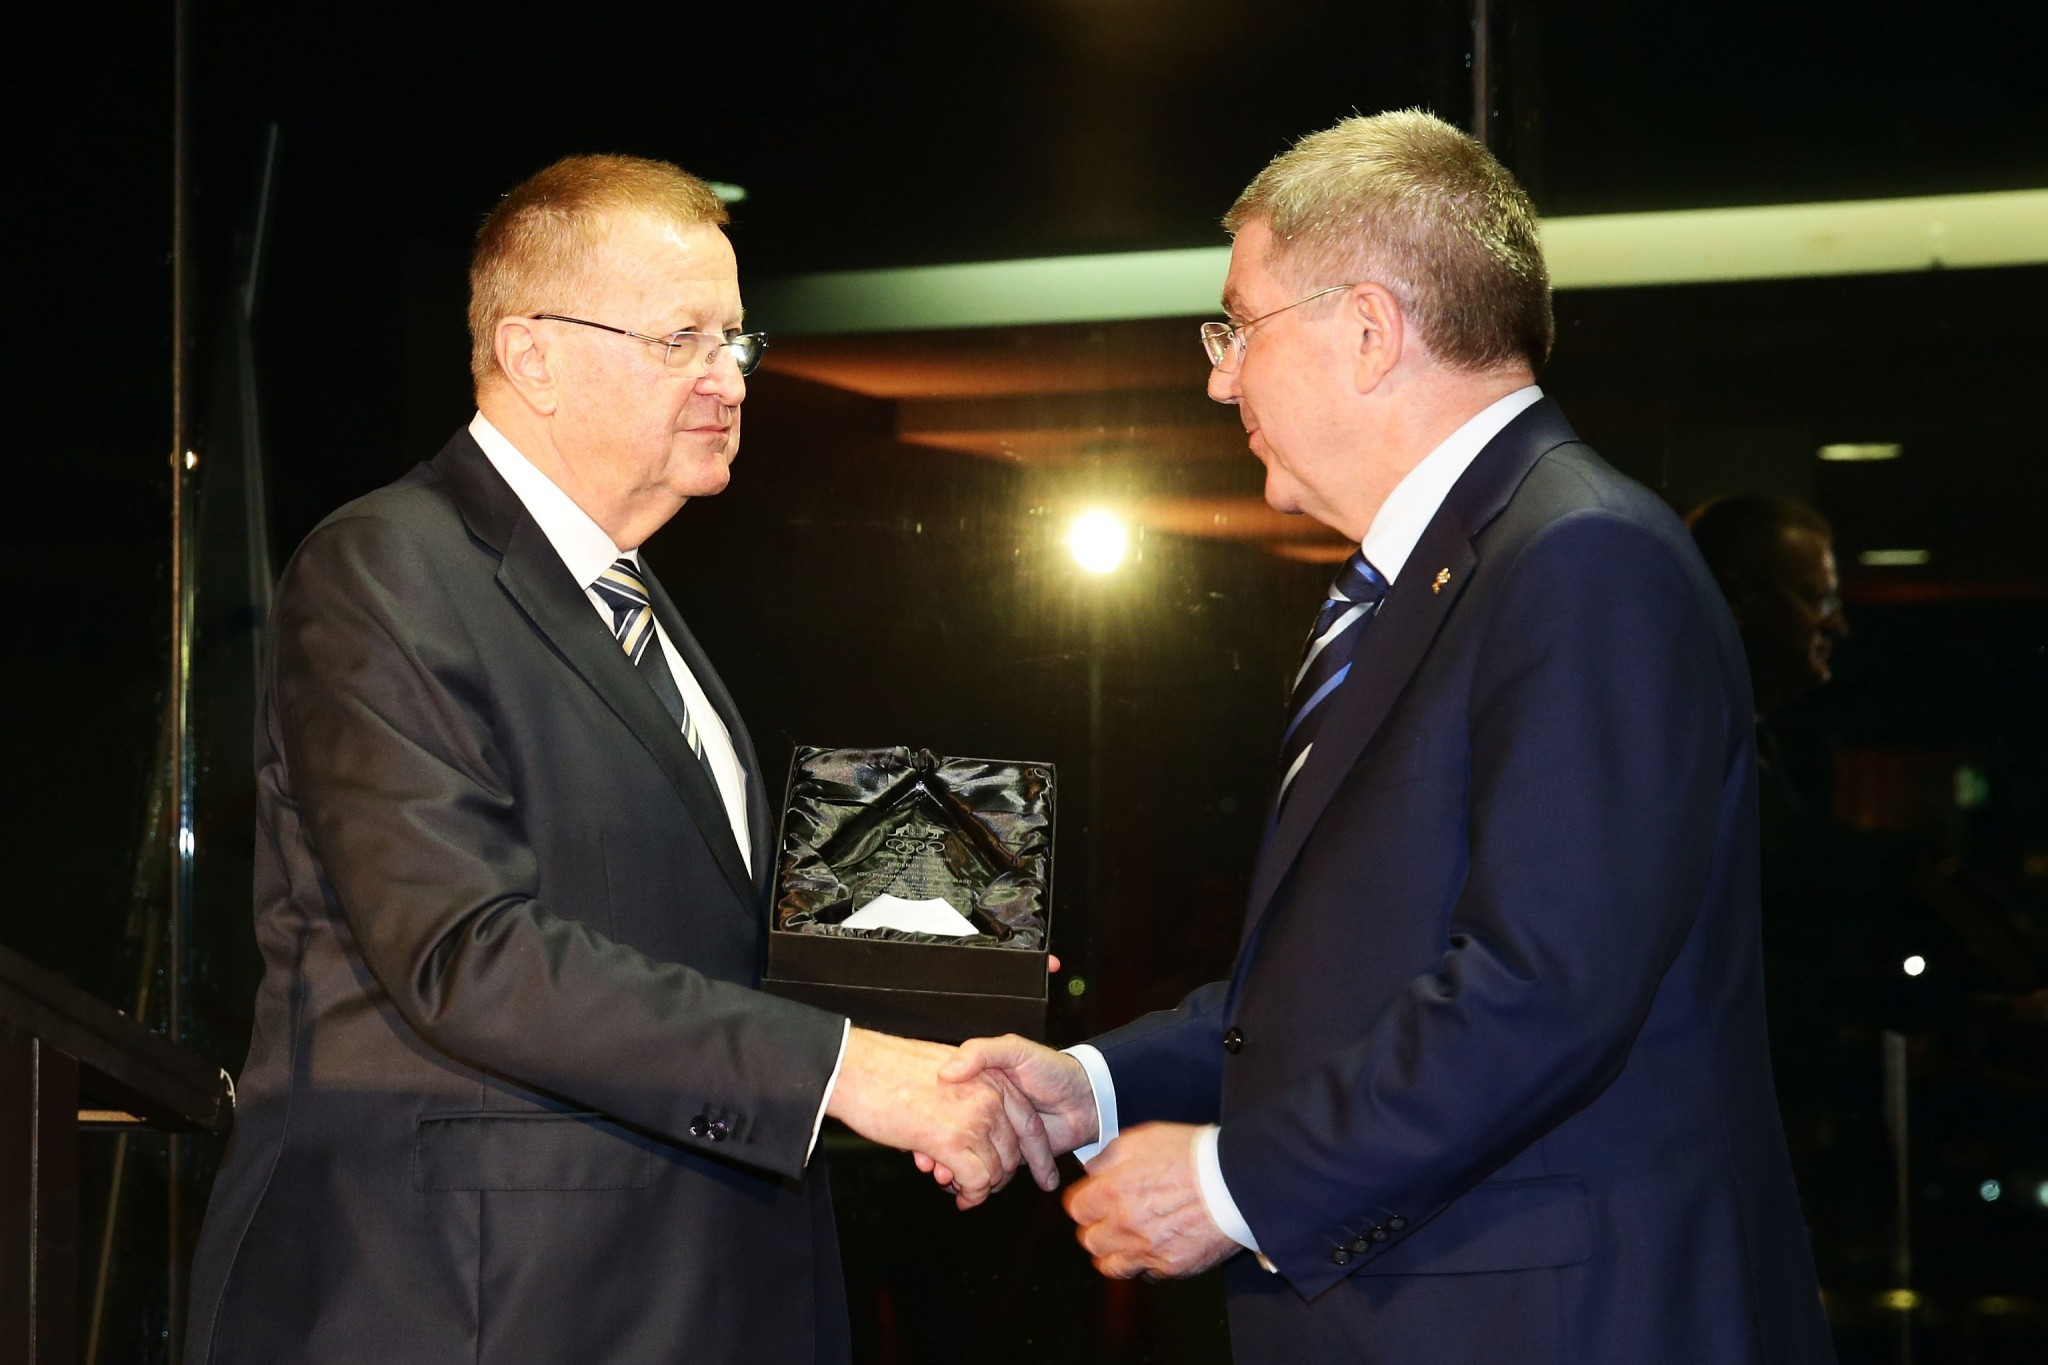 John Coates, left, is a close ally of IOC President Thomas Bach ©Getty Images